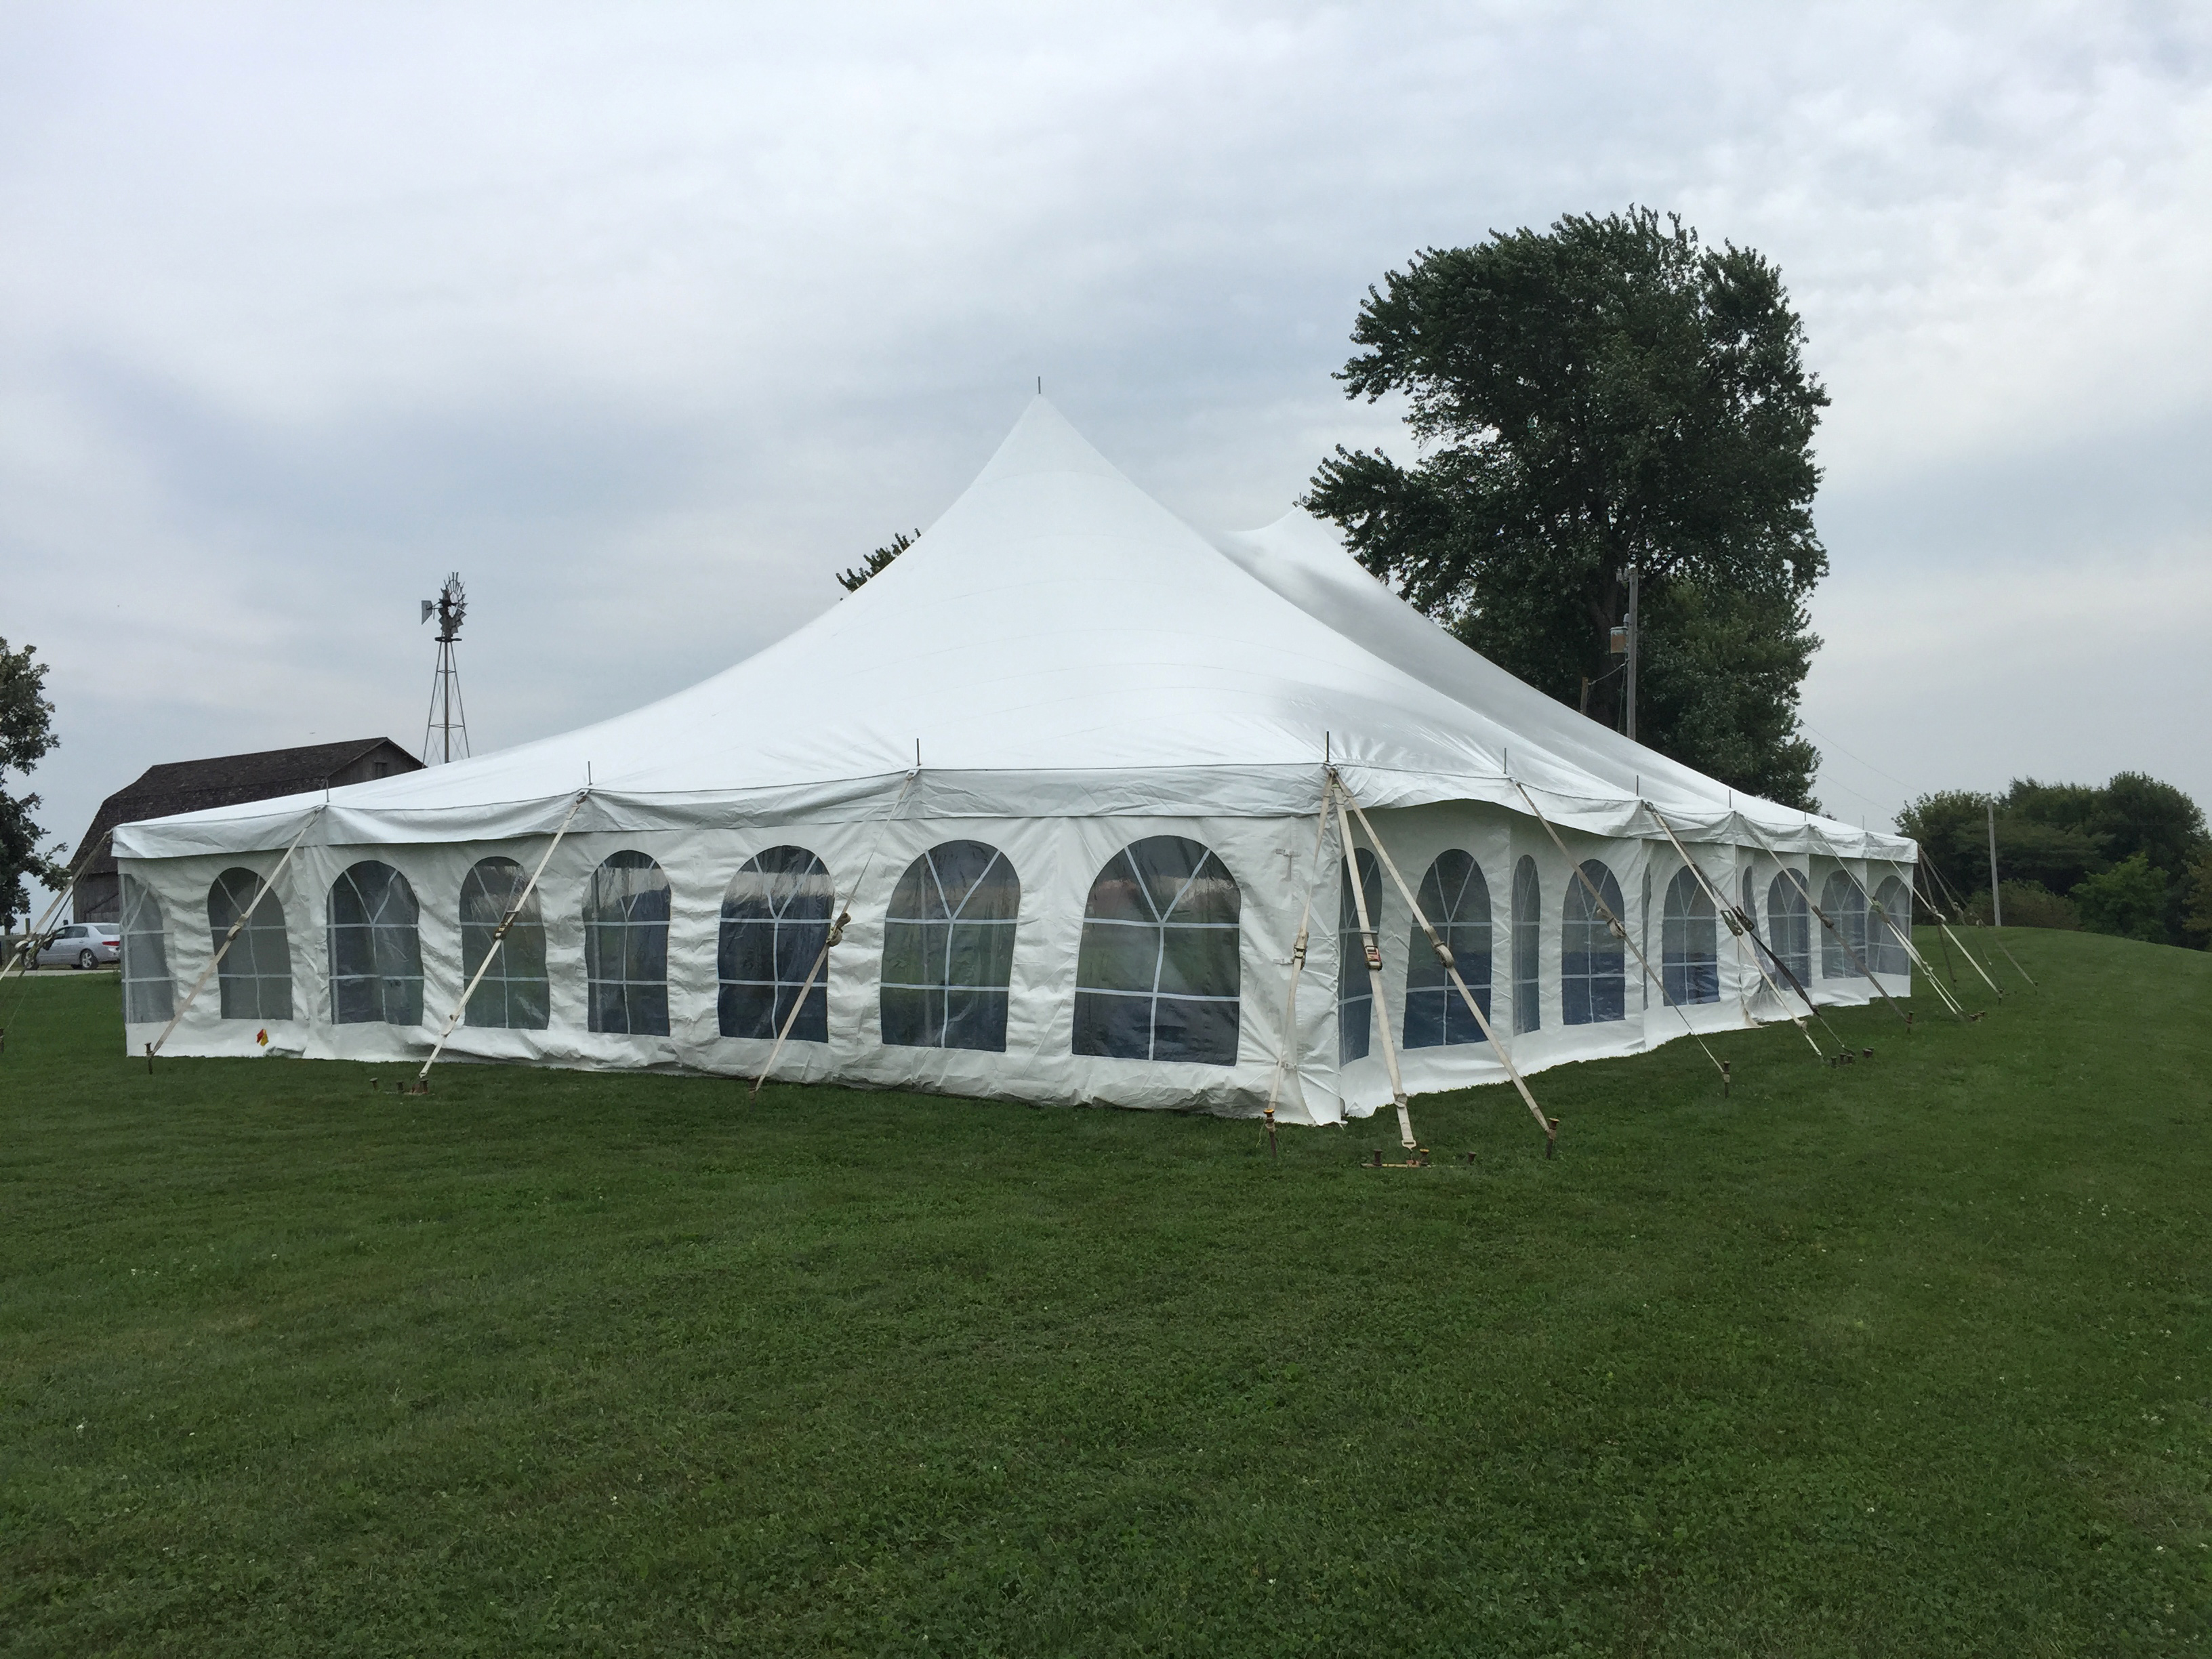 backyard wedding reception under a tent in kalona iowa